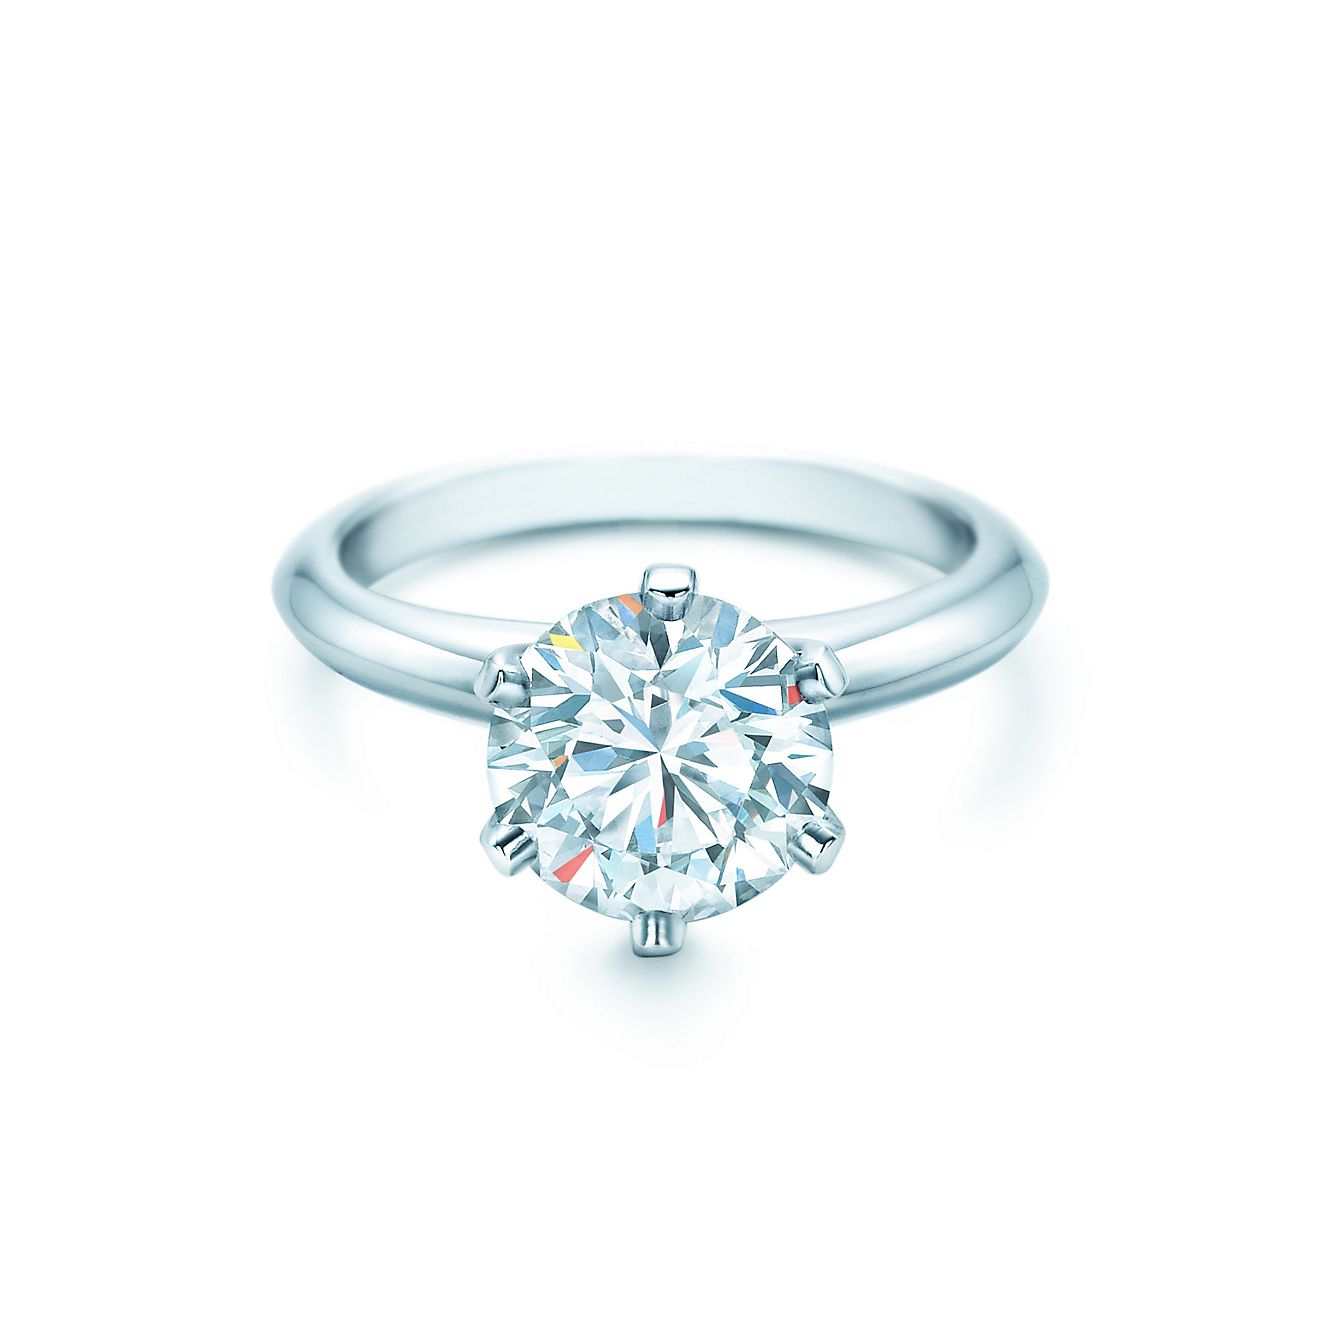 Engagement Ring Settings Engagement Ring Settings Tiffany